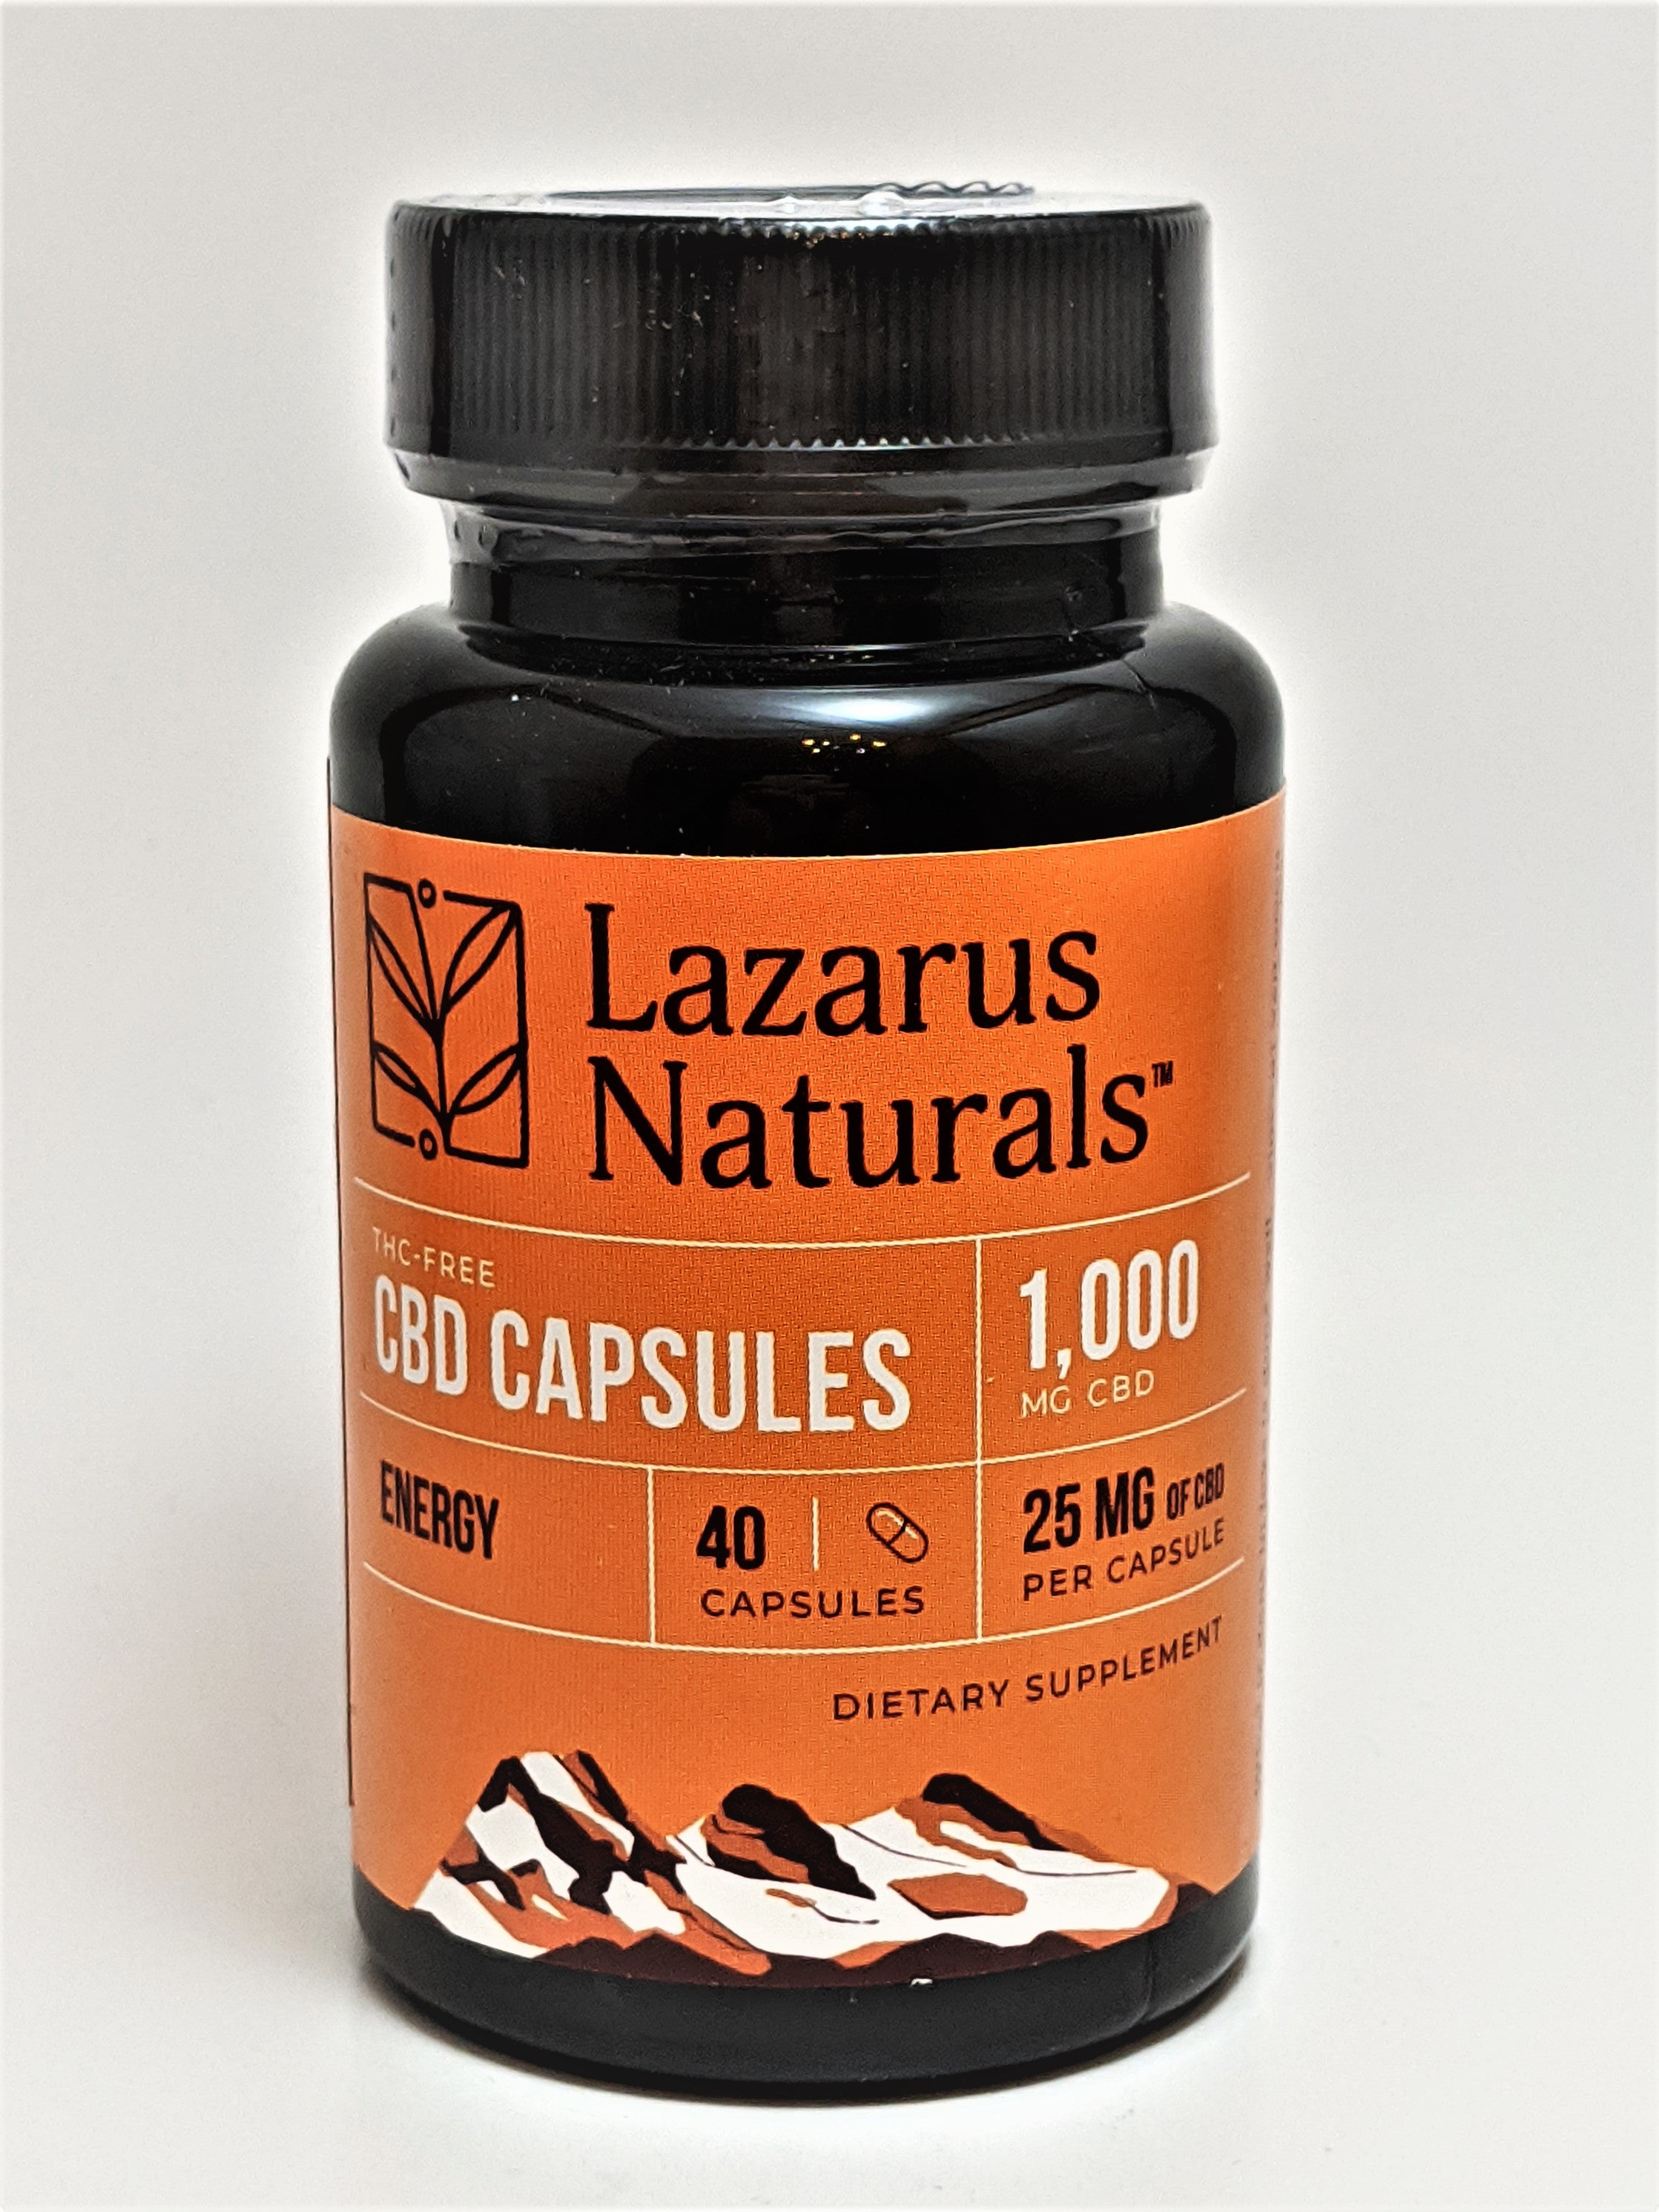 Energy Blend 25mg CBD Isolate Capsules, 40 Count Bottle (1,000 mg CBD) - CBD Central